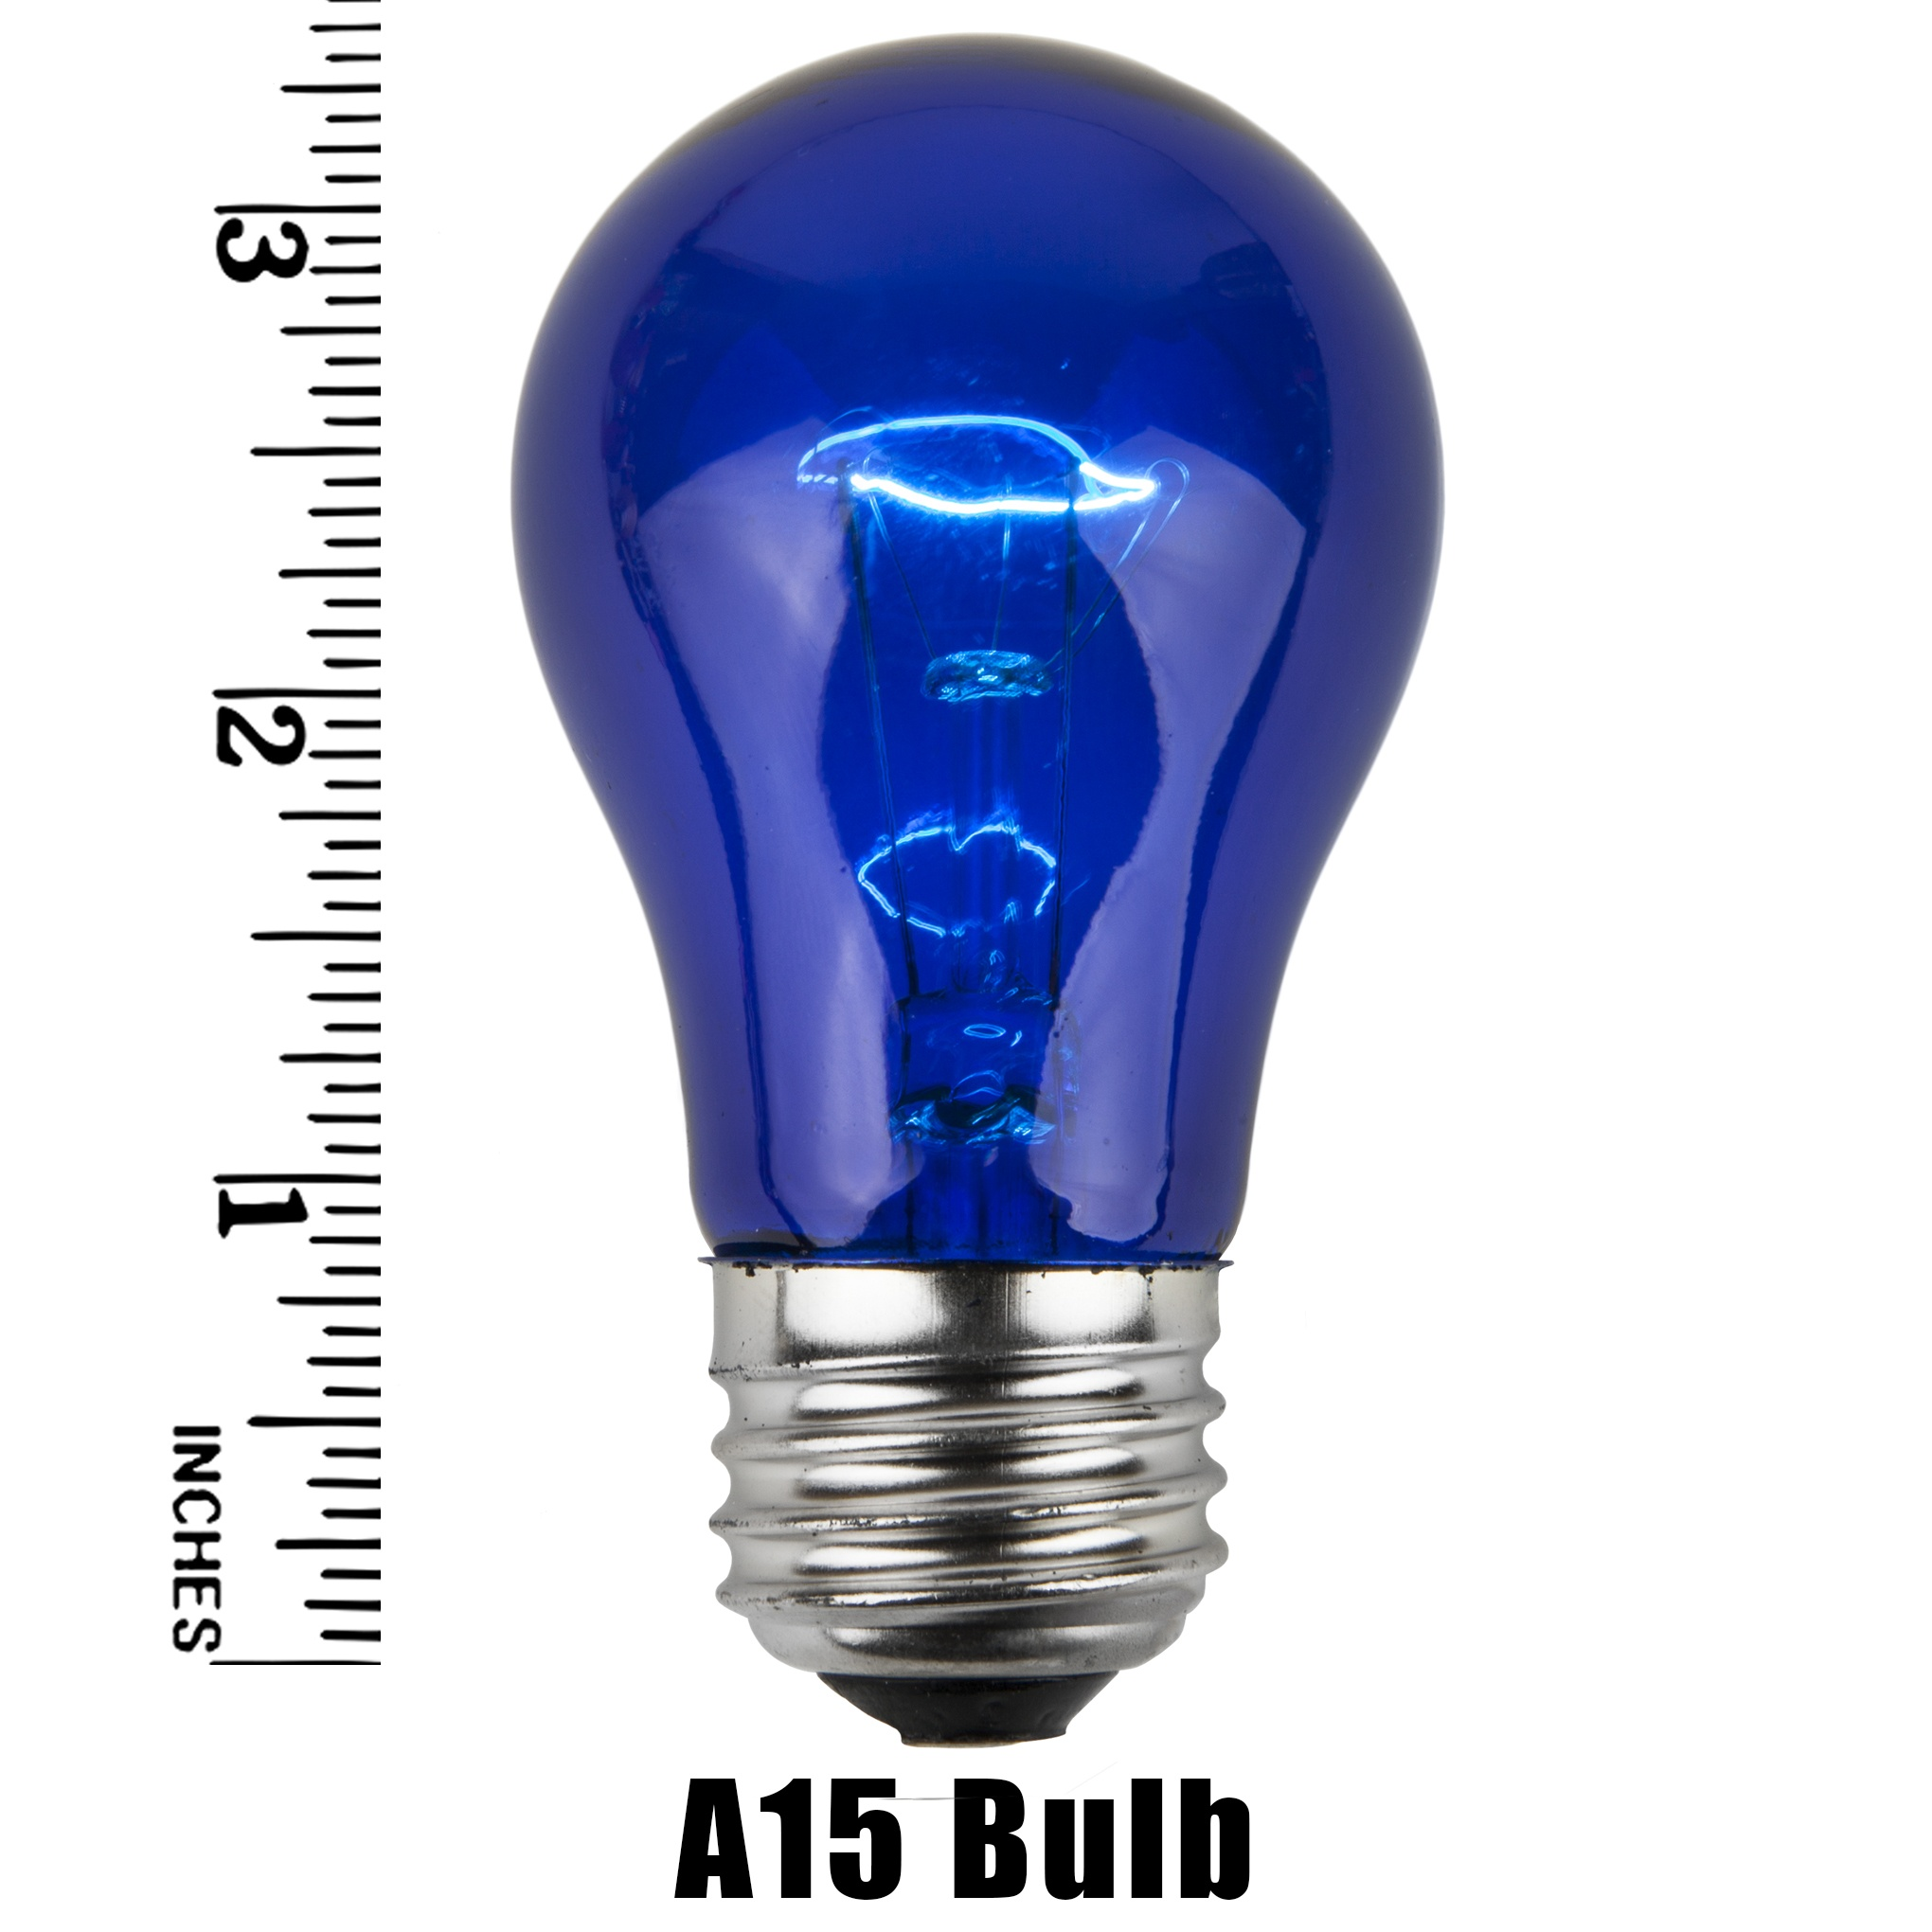 a15 transparent blue 15 watt replacement bulbs - A15 Bulb